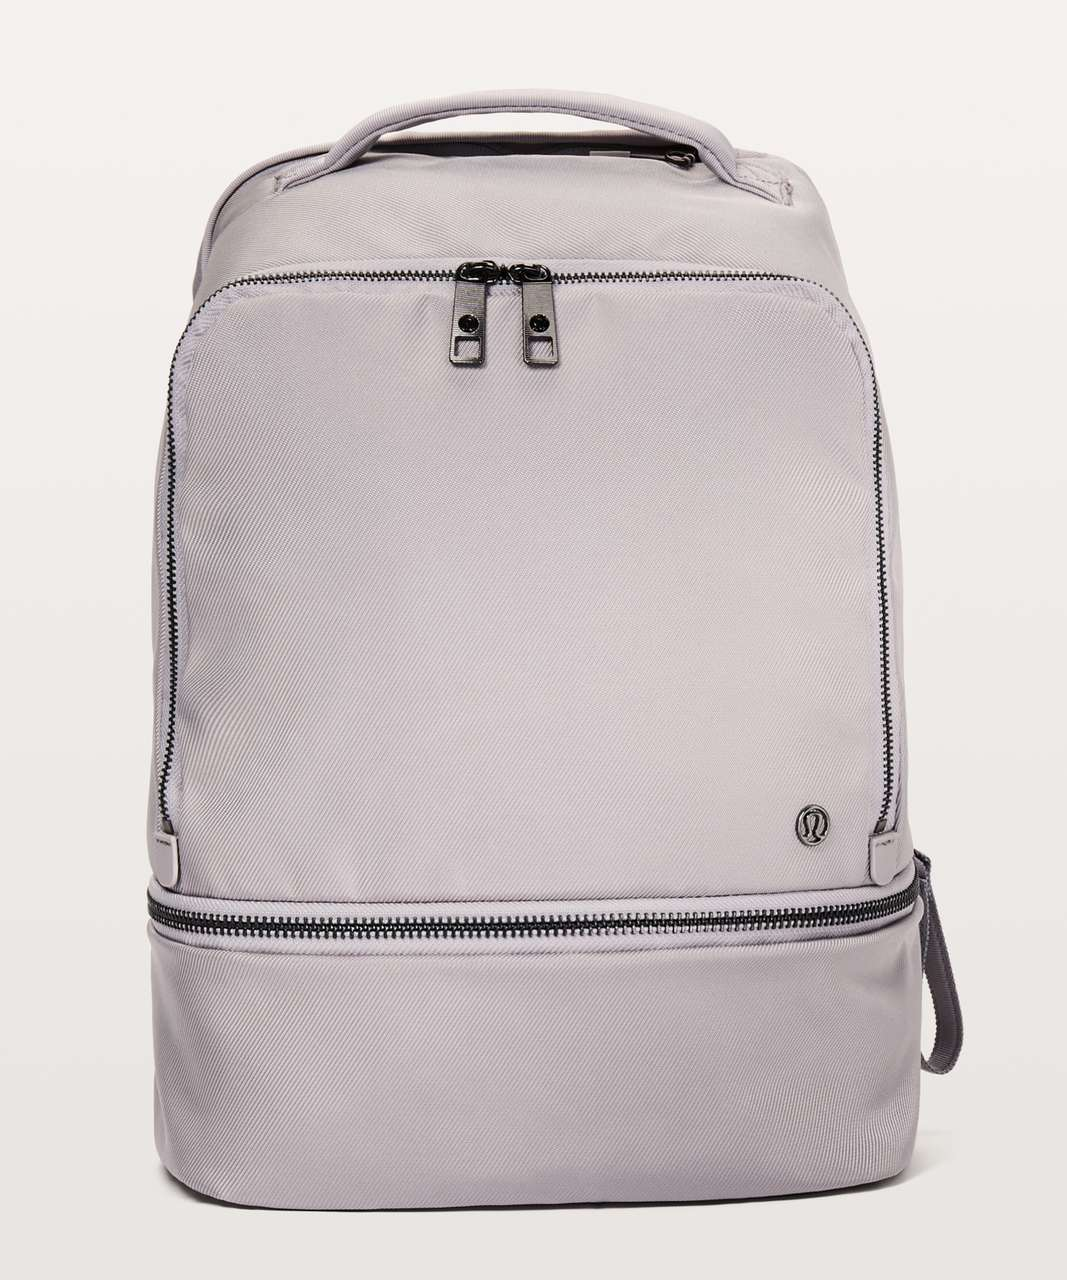 Lululemon City Adventurer Backpack *17L - Dark Chrome